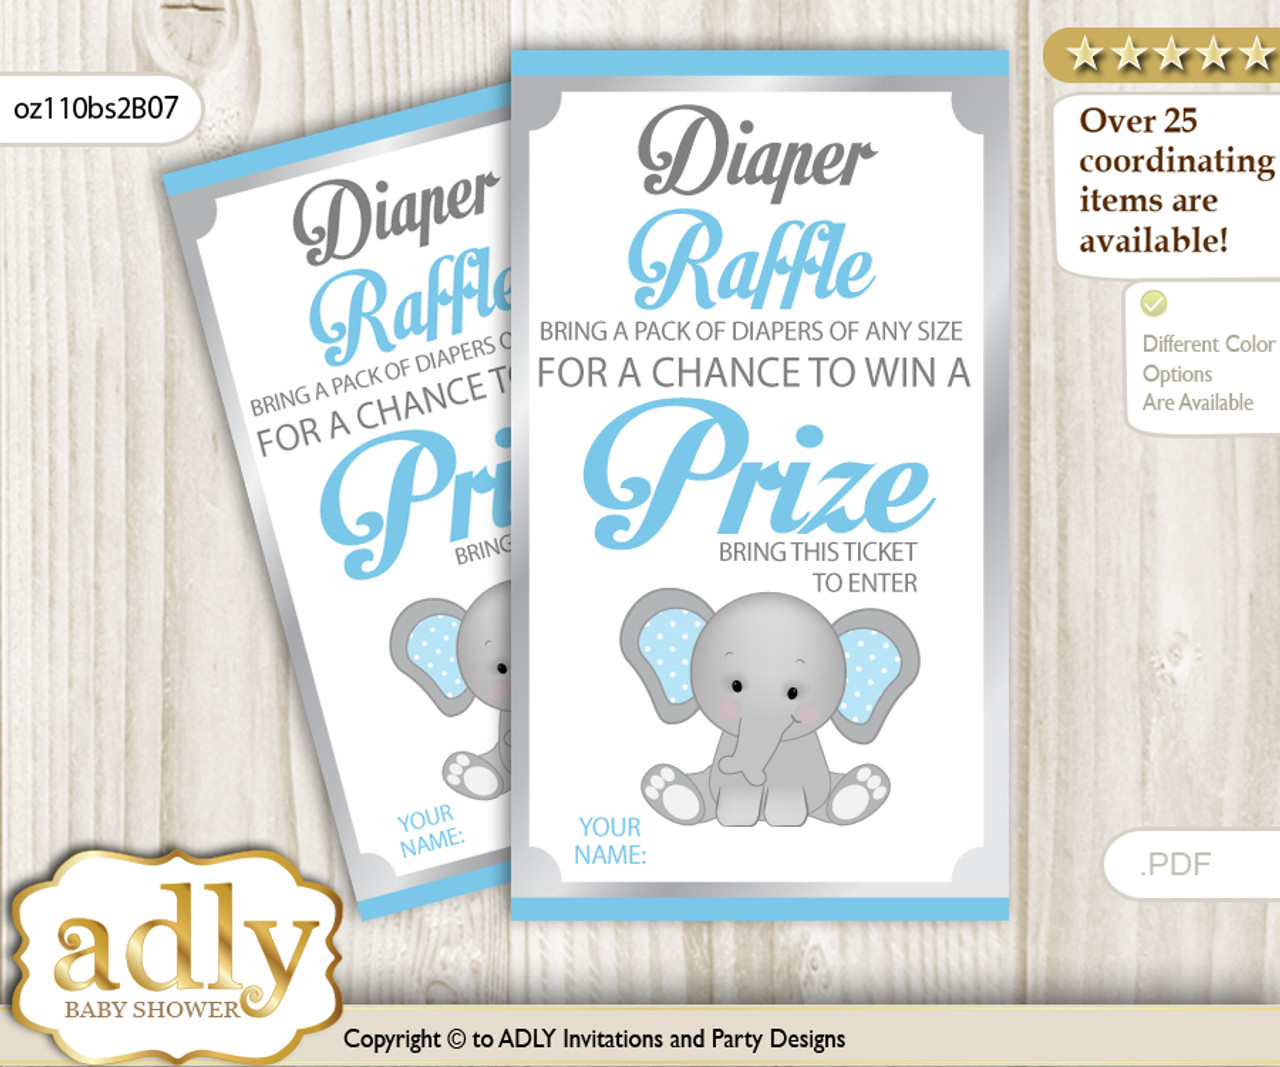 photograph relating to Printable Diaper Raffle Tickets identified as Boy Elephant Diaper Raffle Printable Tickets for Child Shower, Gray Blue, Polka